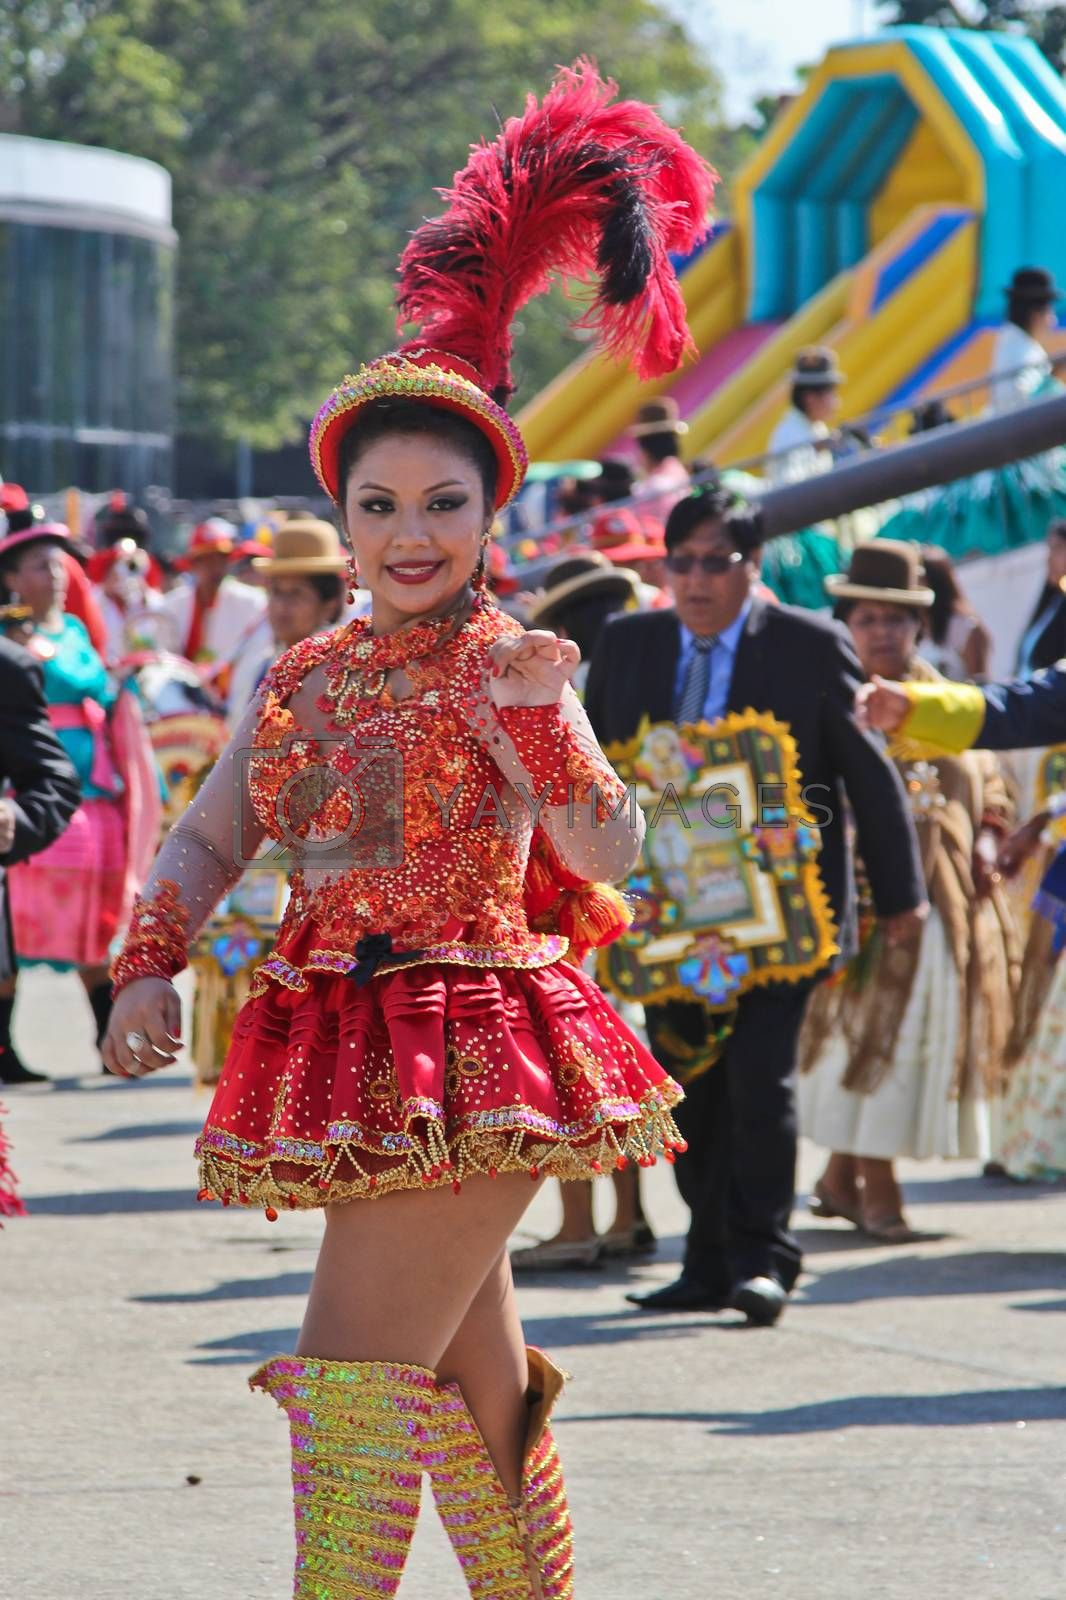 SAO PAULO, BRAZIL August 9 2015: An unidentified girl with typical costume in the Morenada parade in Bolivian Independence Day celebration in Sao Paulo Brazil.